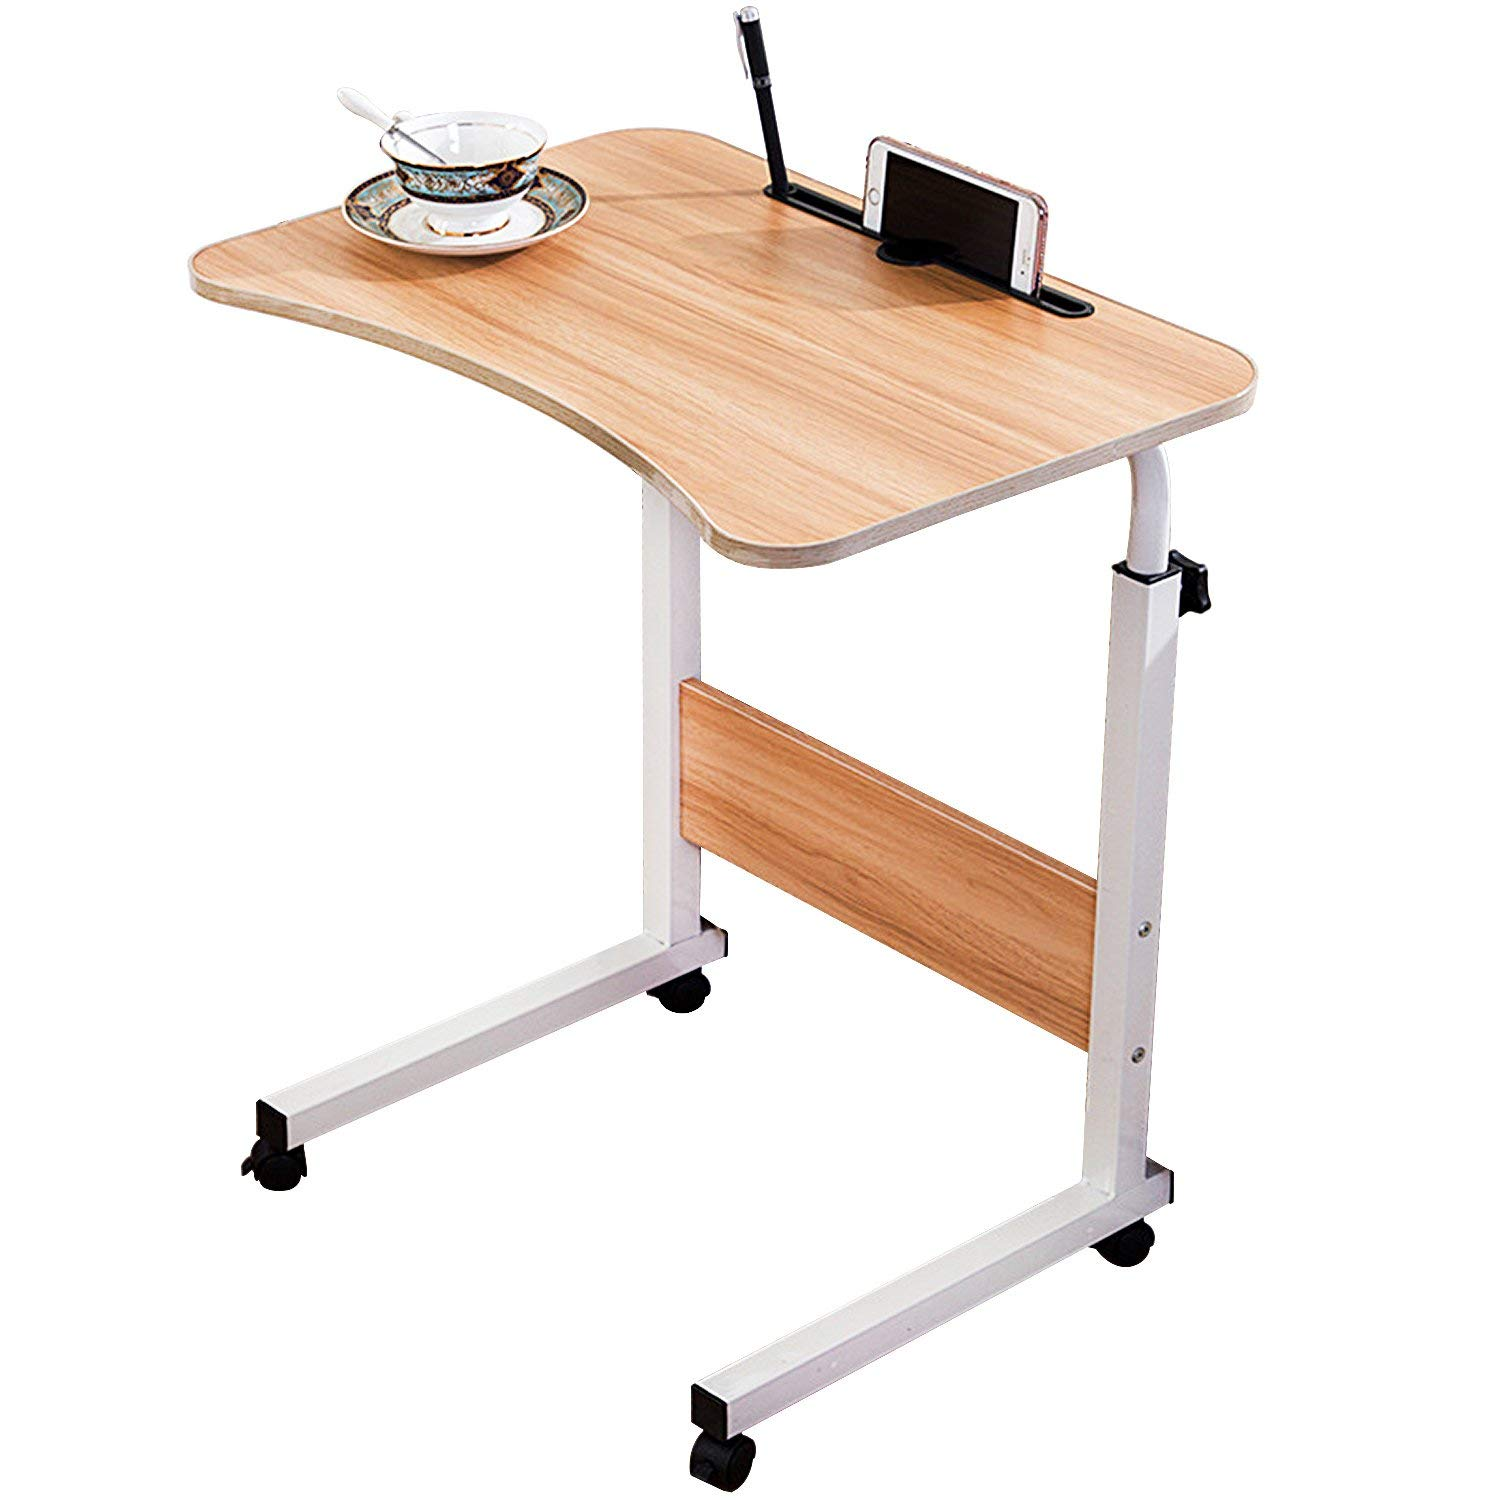 DL furniture - Adjustable Desk Body Curve Edge Design With Phone